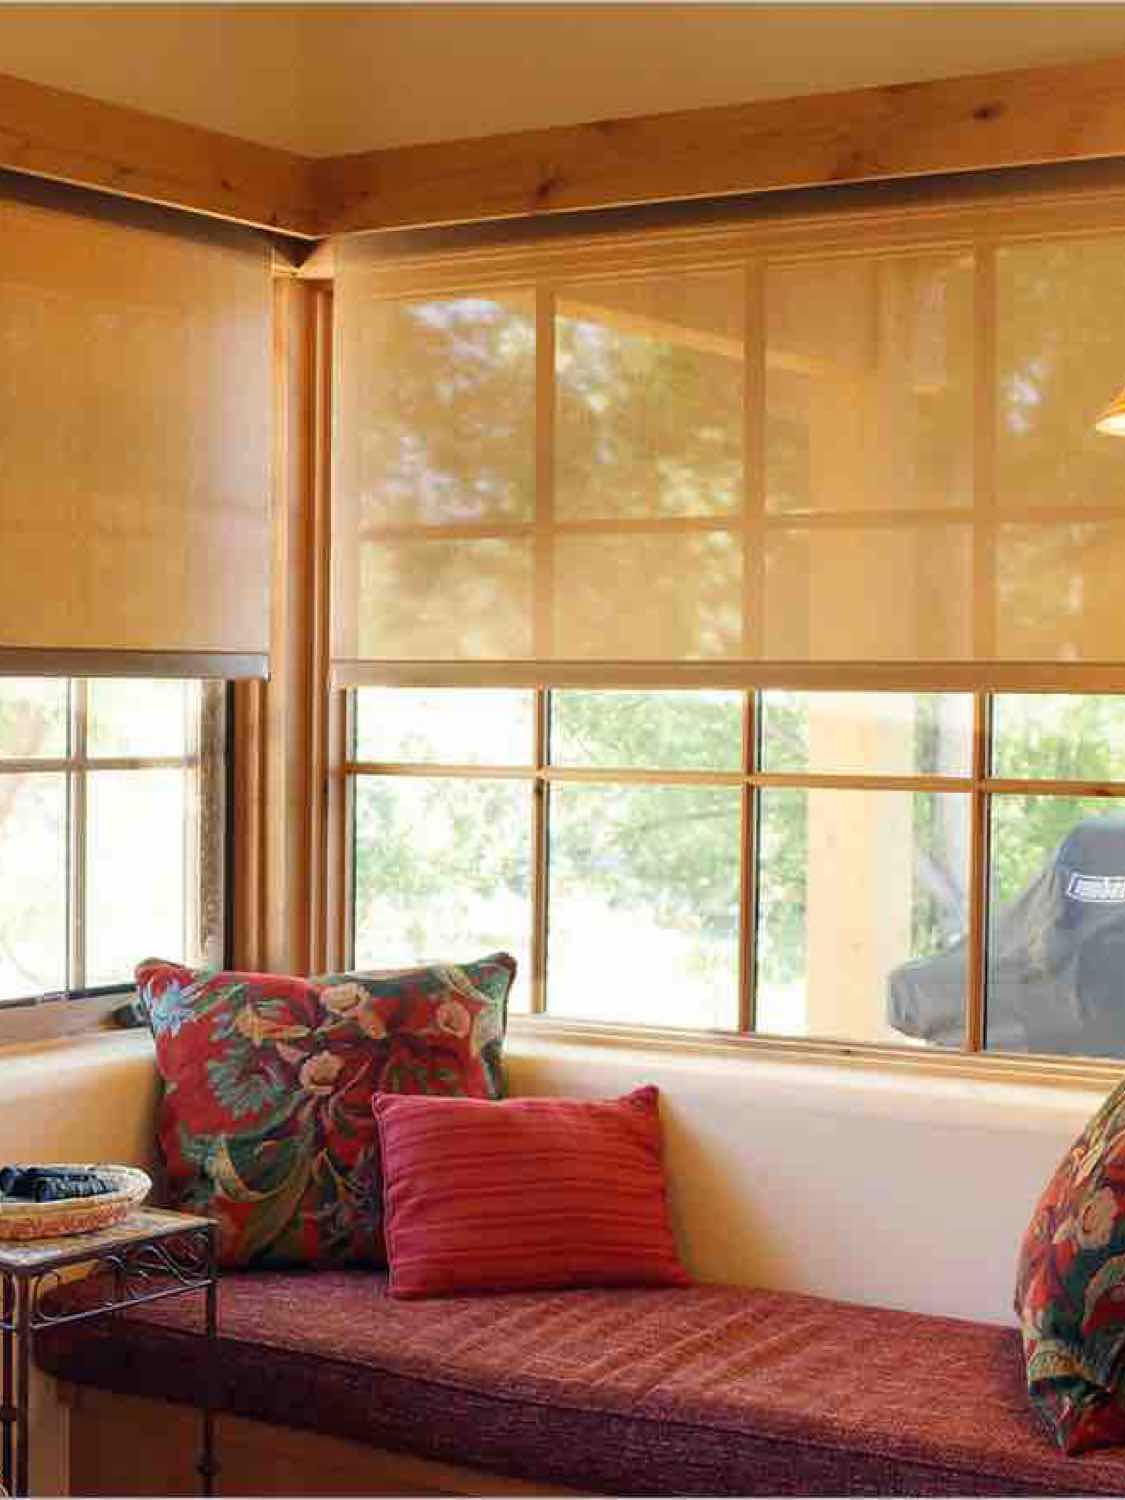 Solar Window Shades - Today's Interiors